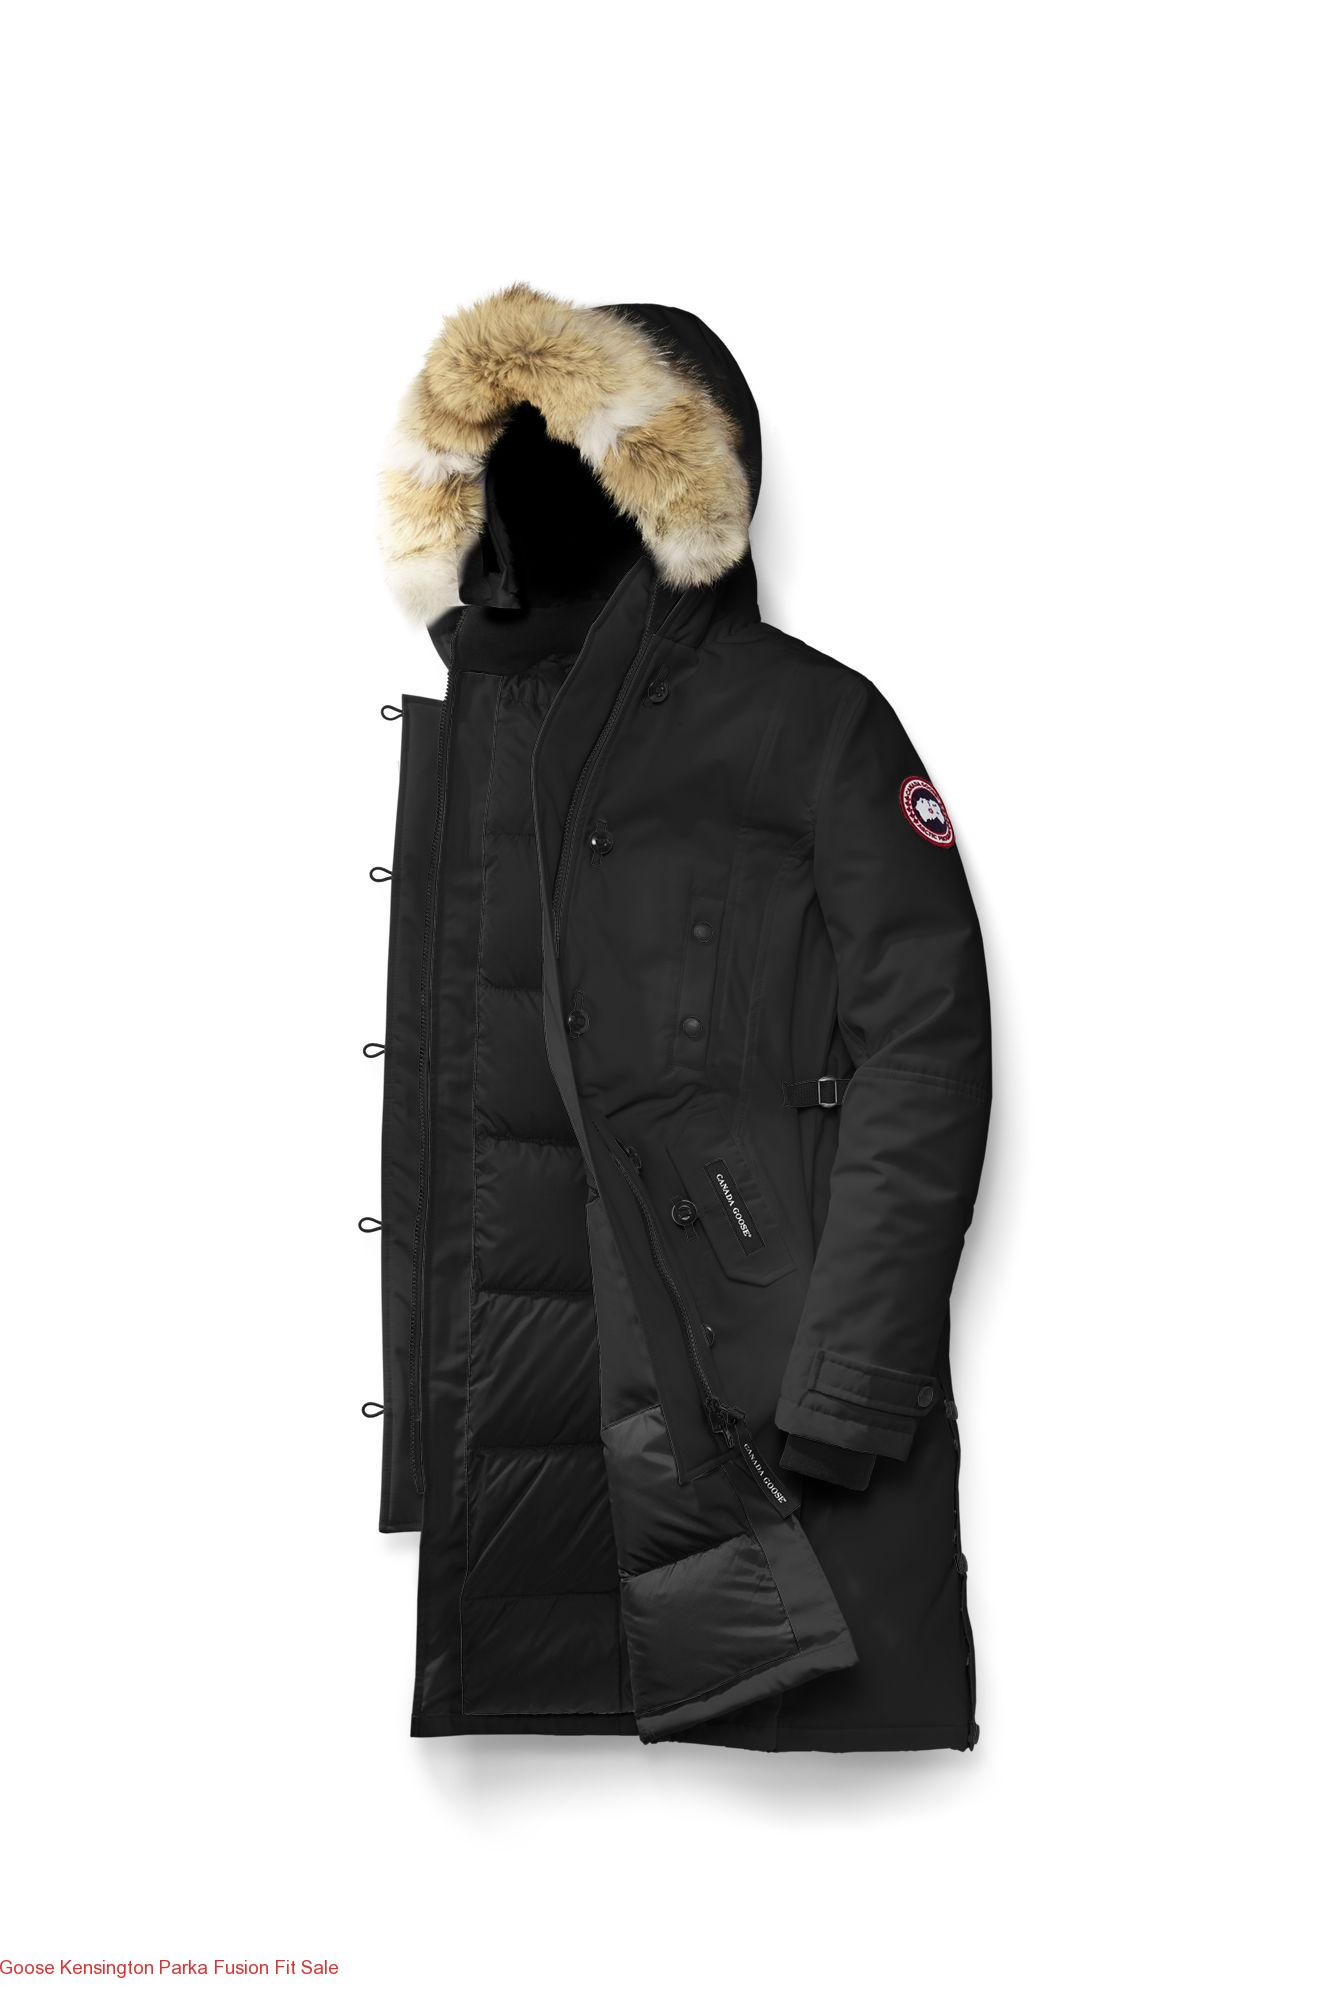 Goose Kensington Parka Fusion Fit Sale